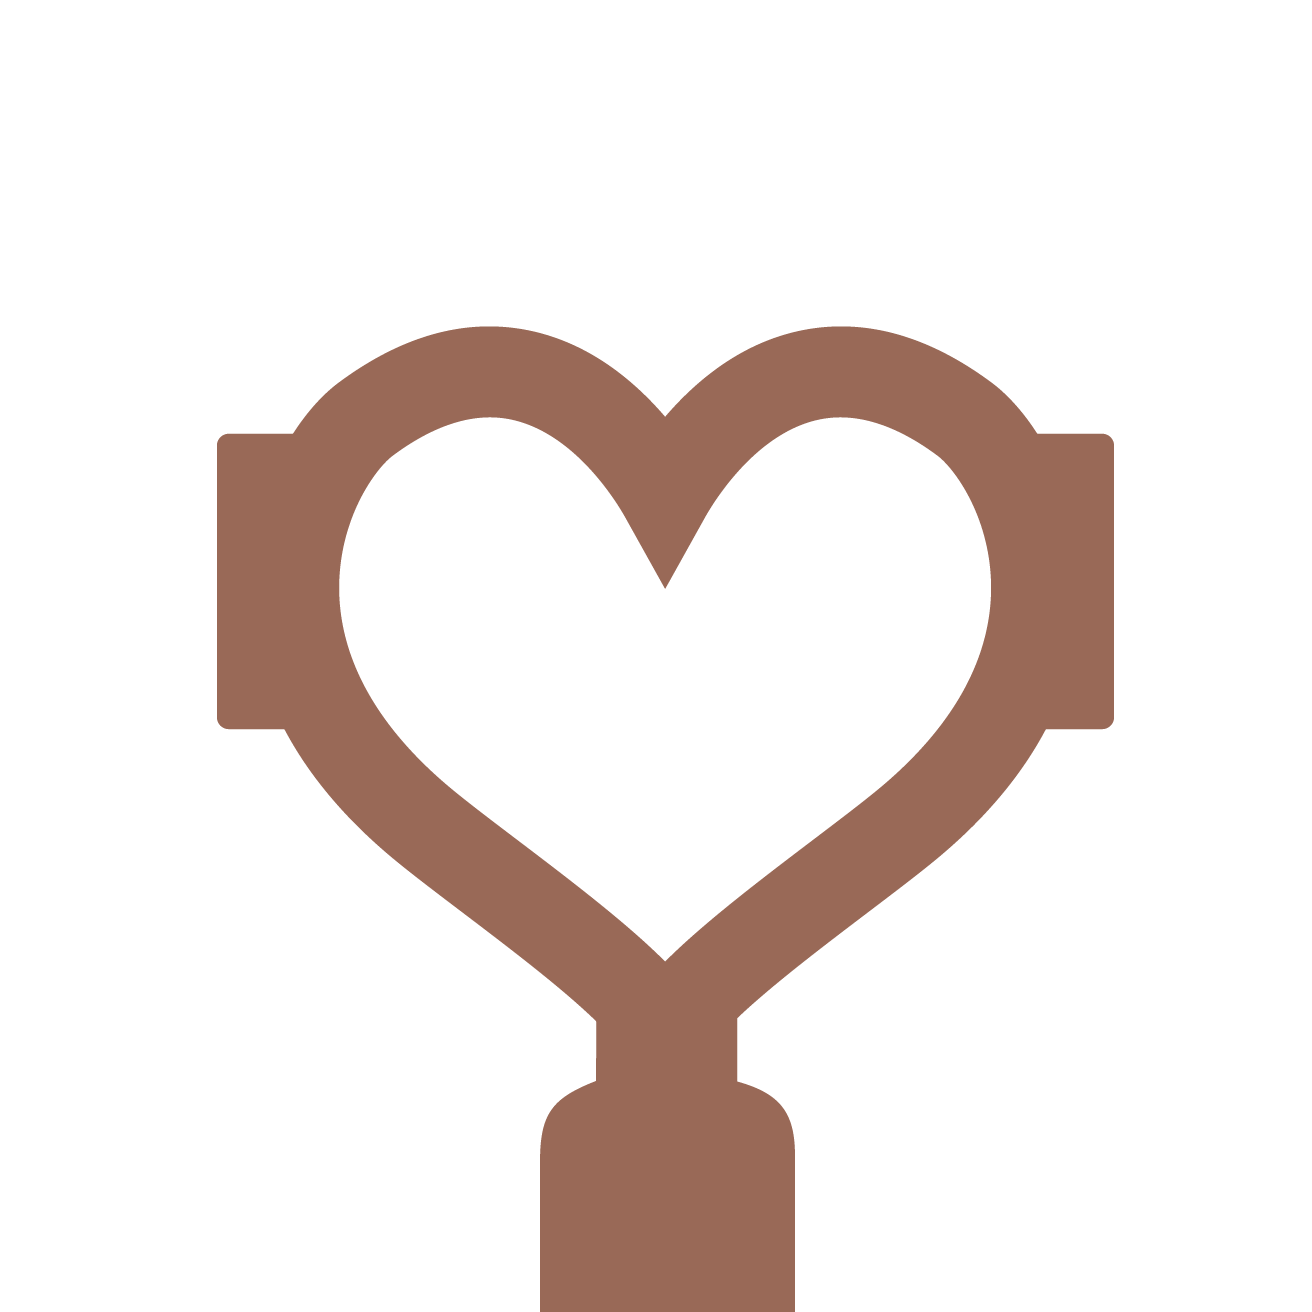 Moccamaster Technivorm KBG741 AO Stone Grey, with FREE 250g bag of Coffee